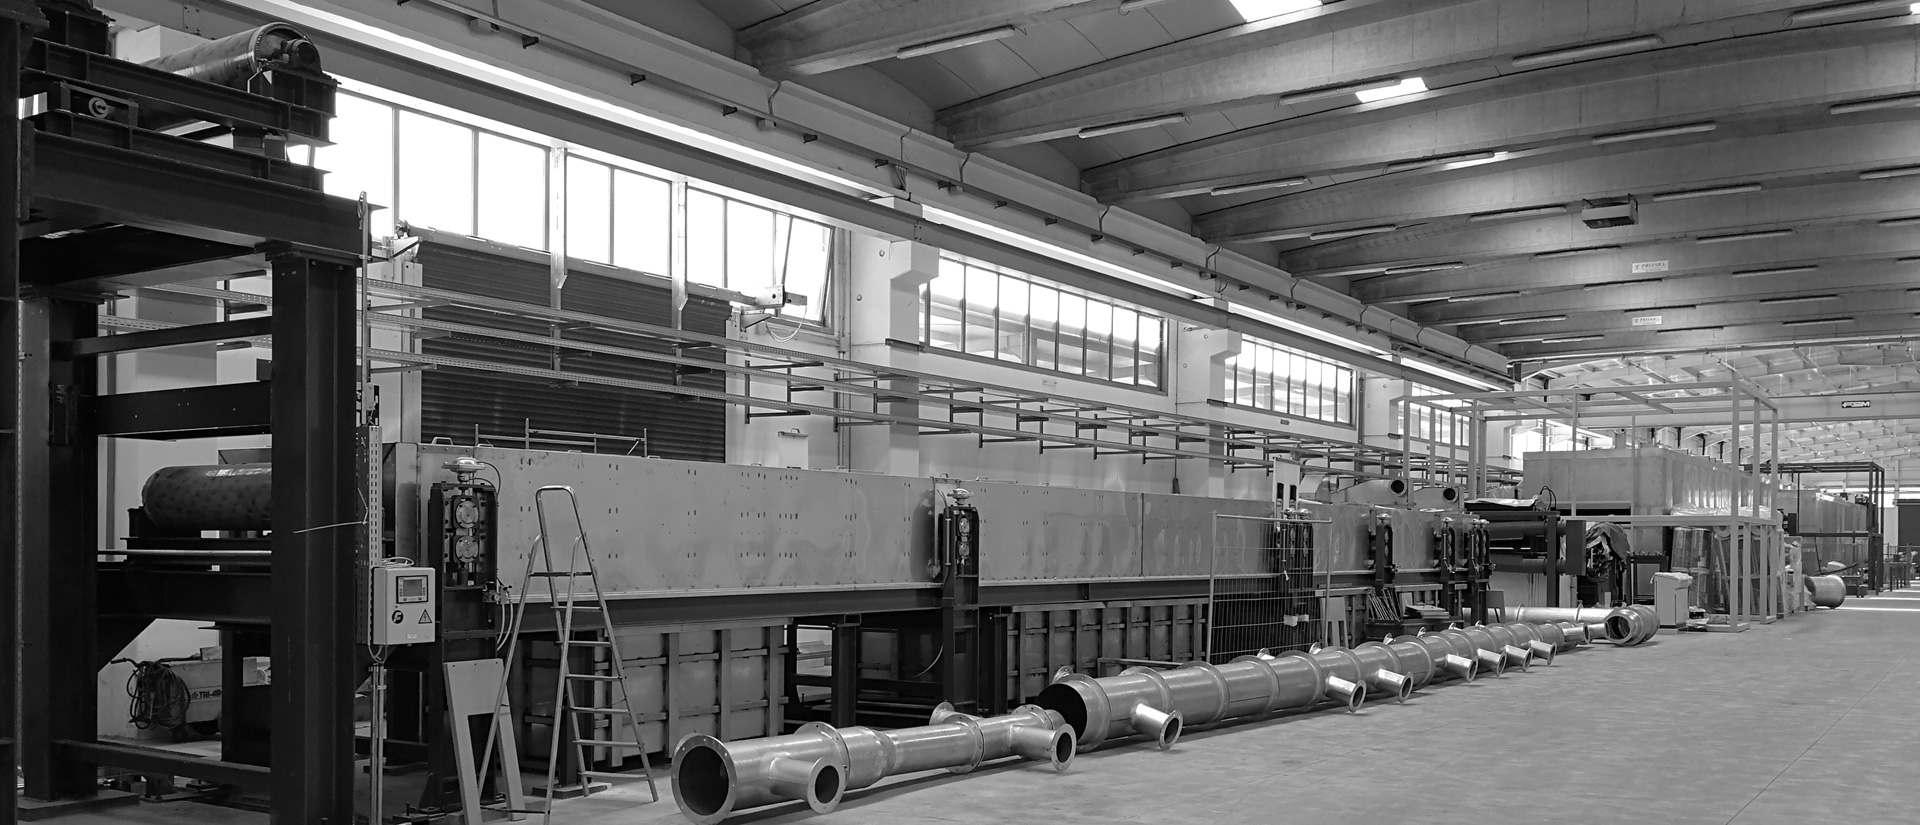 Coating line - Pre-treatment's coating line